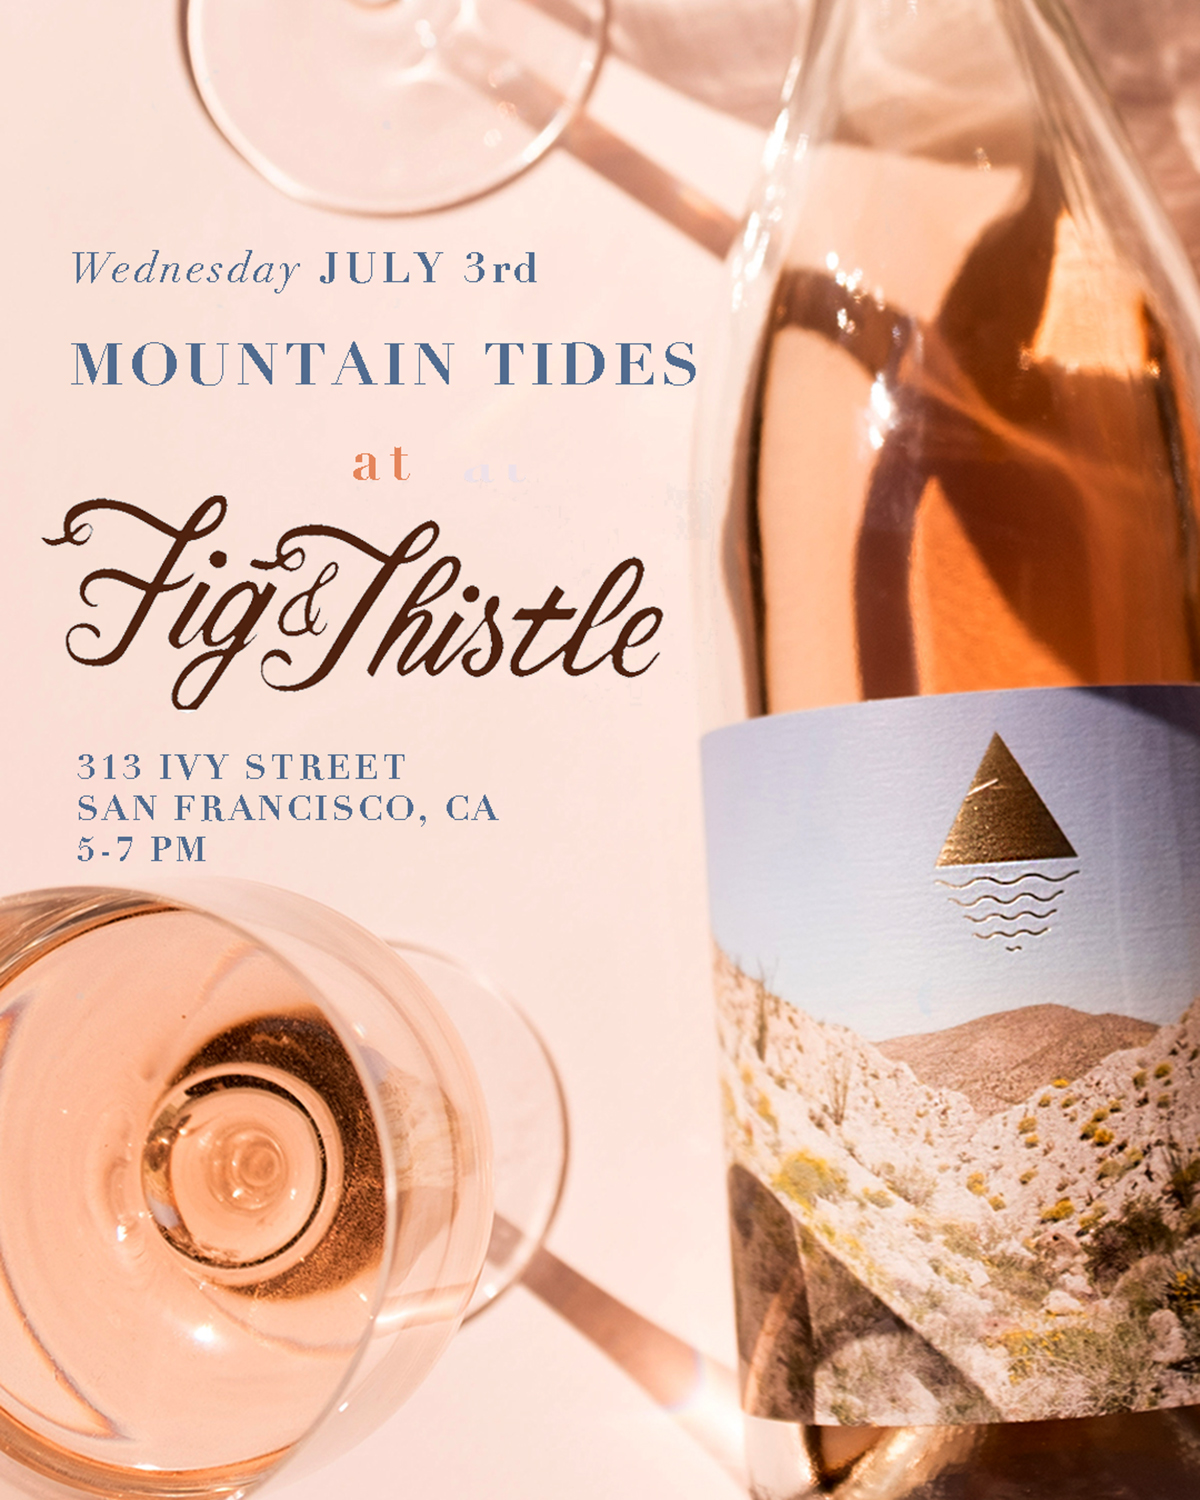 mountaintides-instagram-post-wine-label-design-rosé-spring-wine-release-2019-allison-watkins-photography.jpg